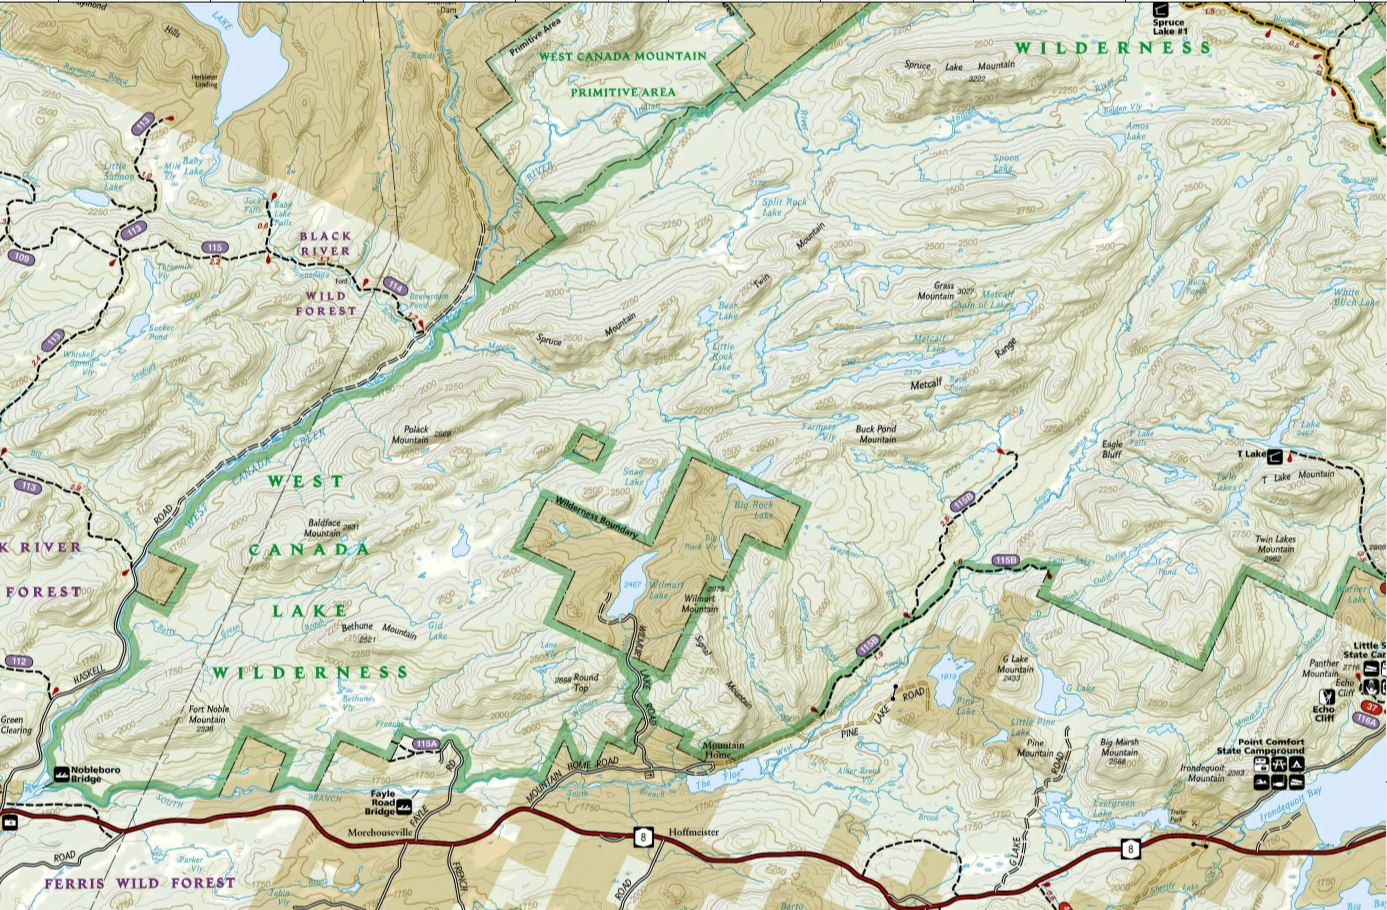 West Canada Lakes Wilderness - Map of canada and lakes